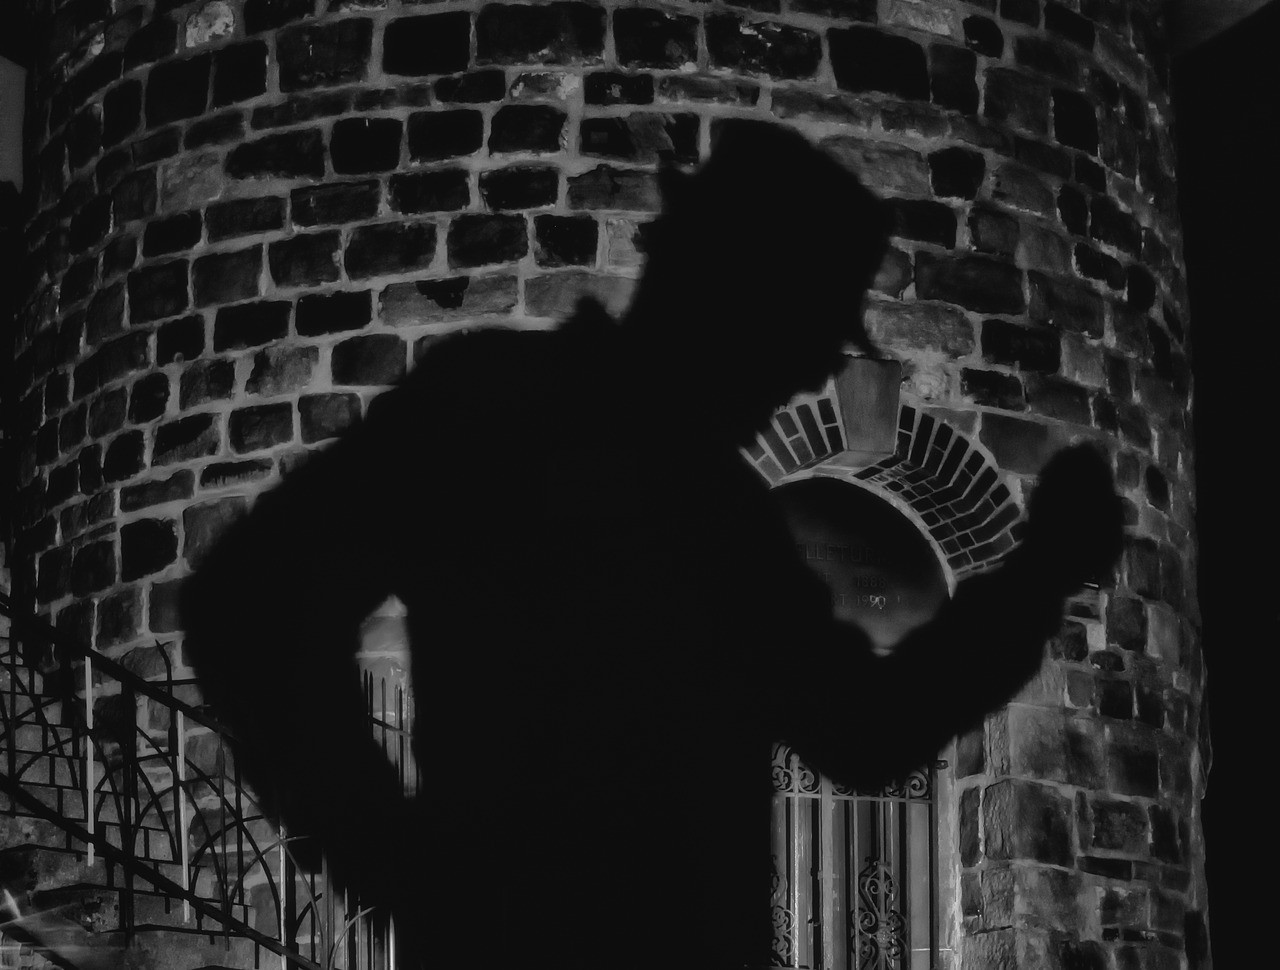 A man's shadow cast upon a brick building